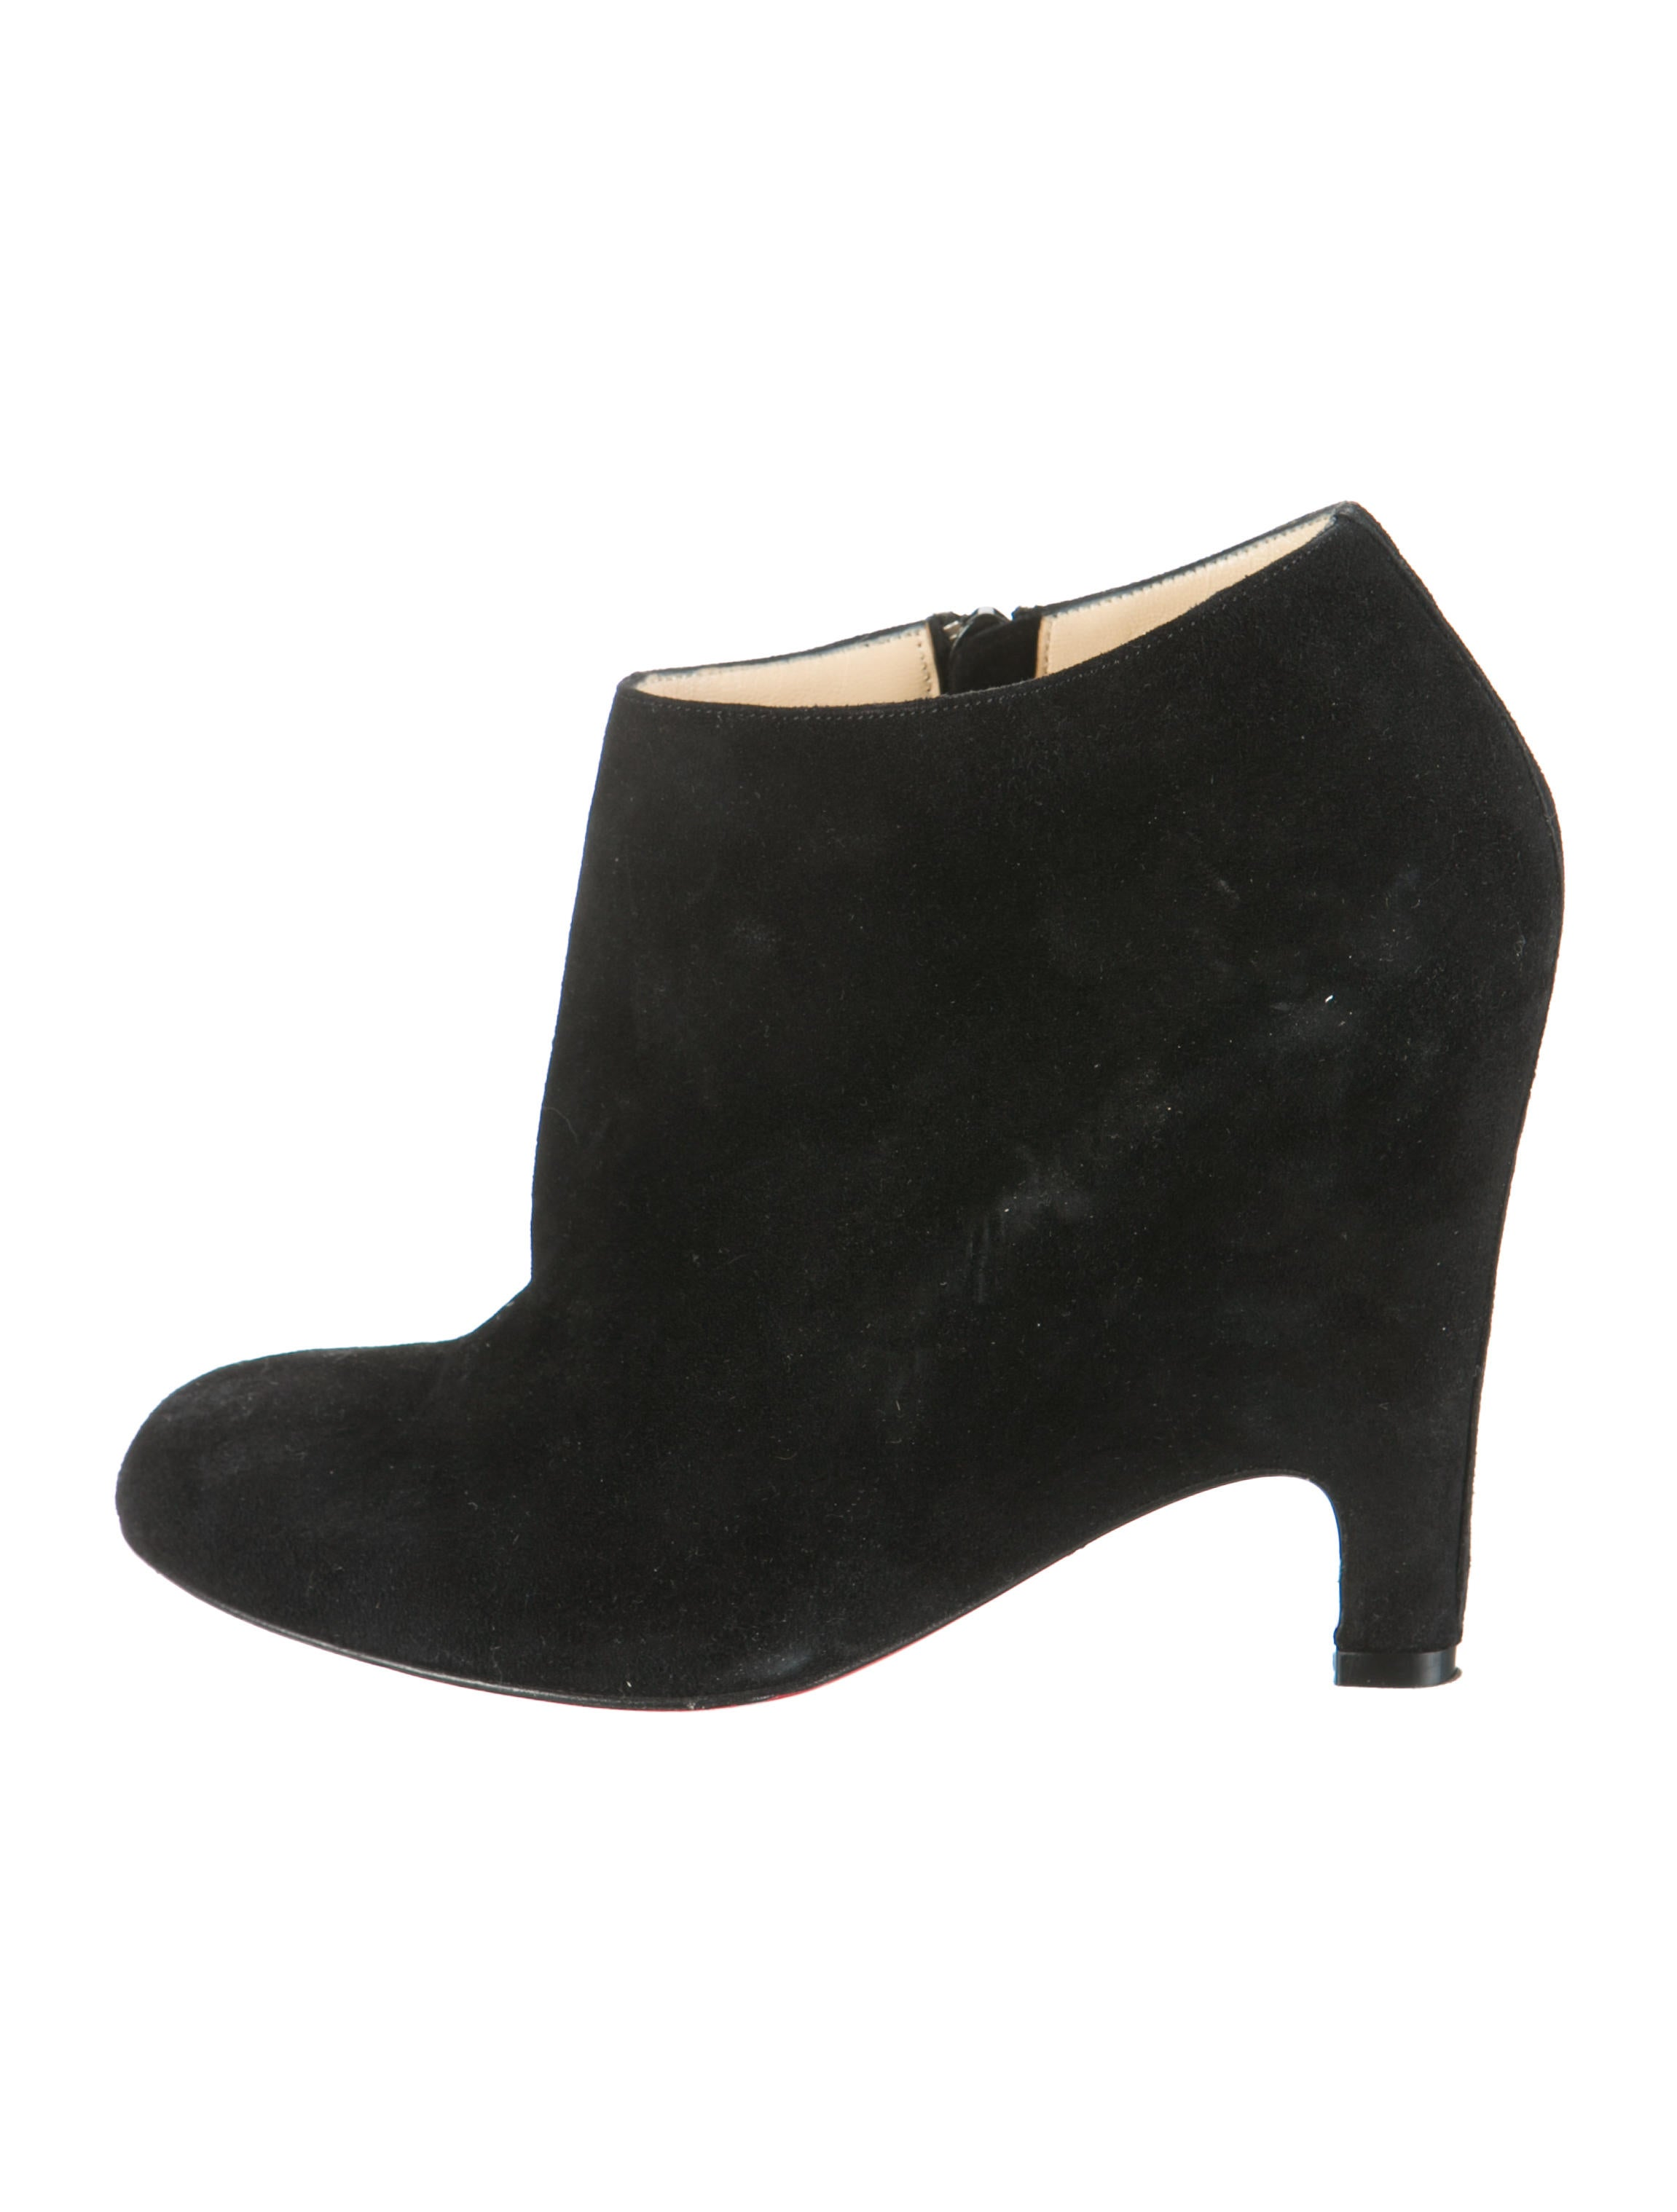 fake louboutins for sale - christian louboutin semi pointed-toe booties Black suede covered ...